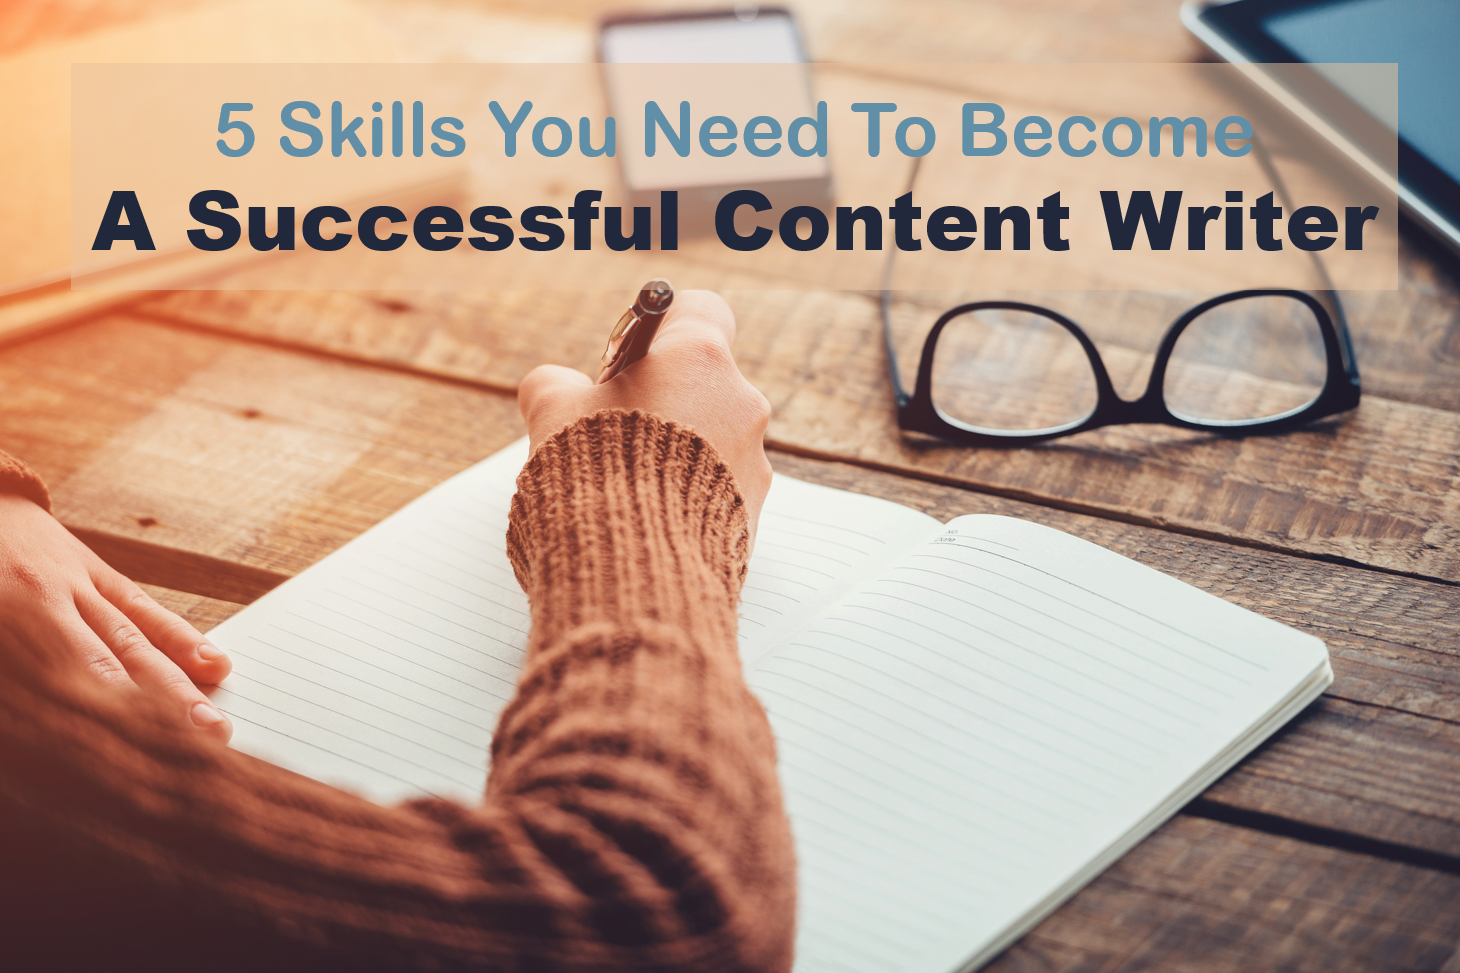 5 Skills You Need to Become a Successful Content Writer